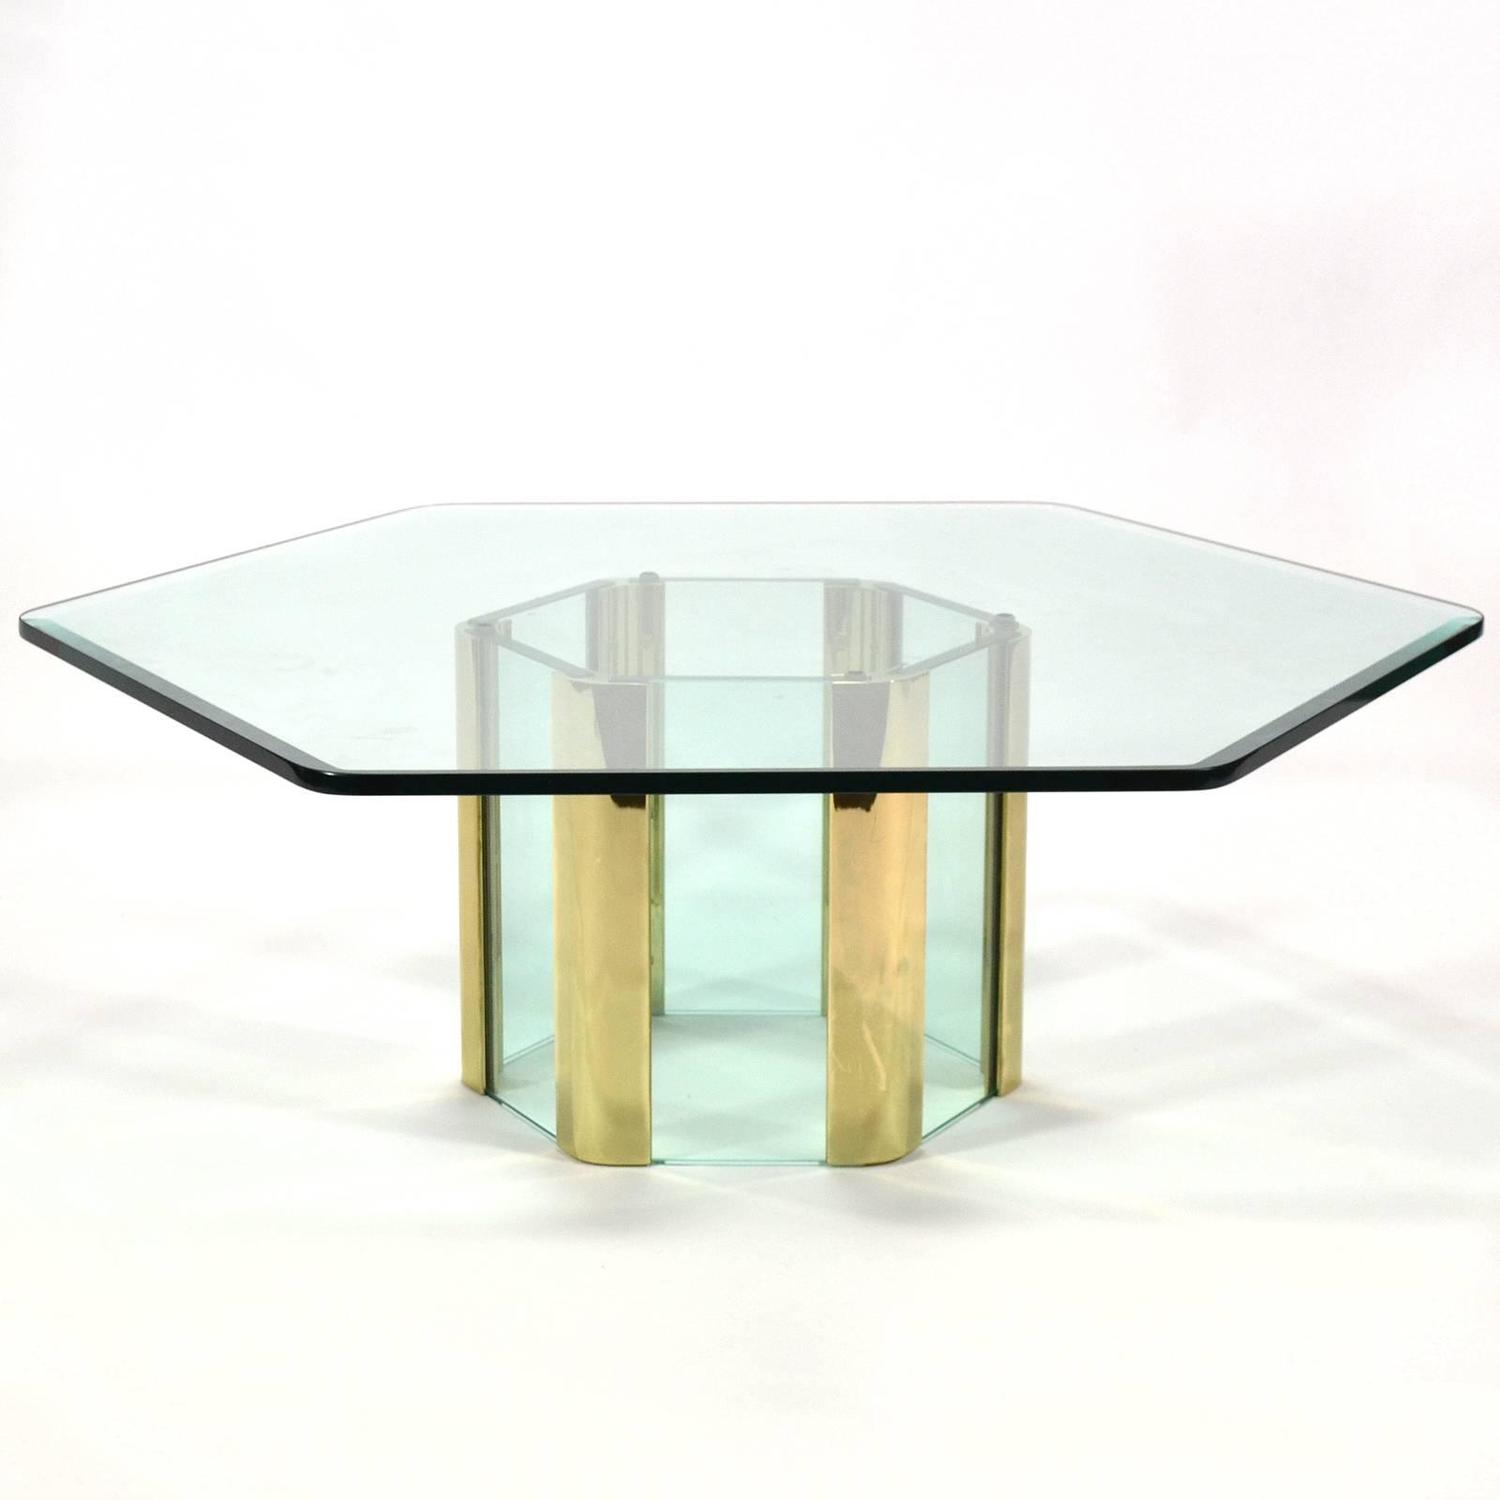 Pace Coffee Table With Hexagonal Designed By Leon Rosen For Sale At 1stdibs